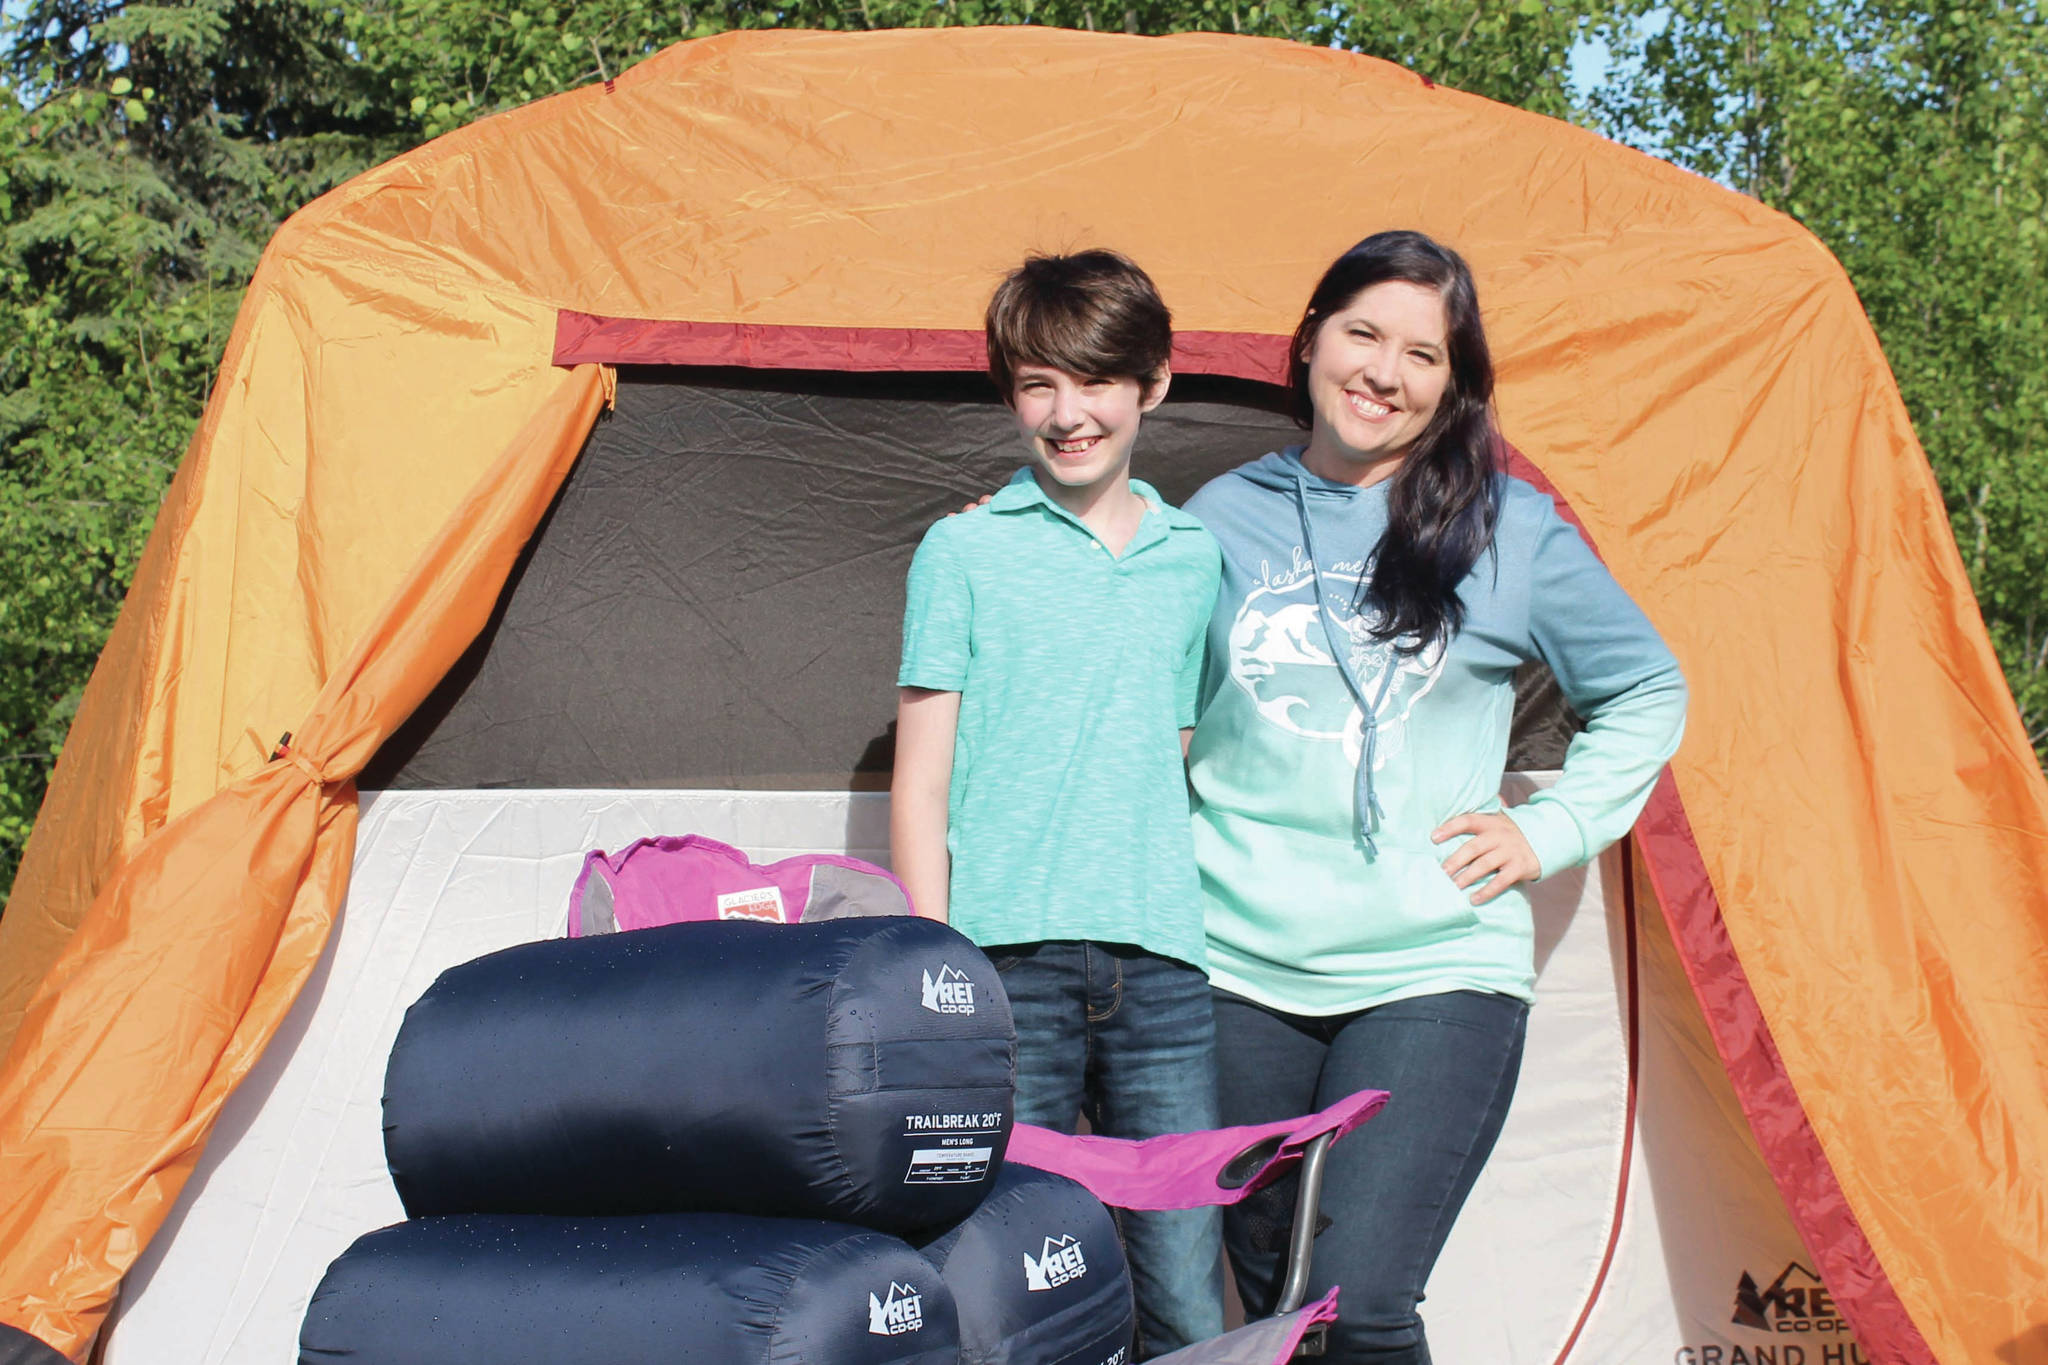 Koebryn and Summer Lazenby stand in front of camping gear at Summer's house on Tuesday, July 13, 2021 near Soldotna, Alaska. (Ashlyn O'Hara/Peninsula Clarion)